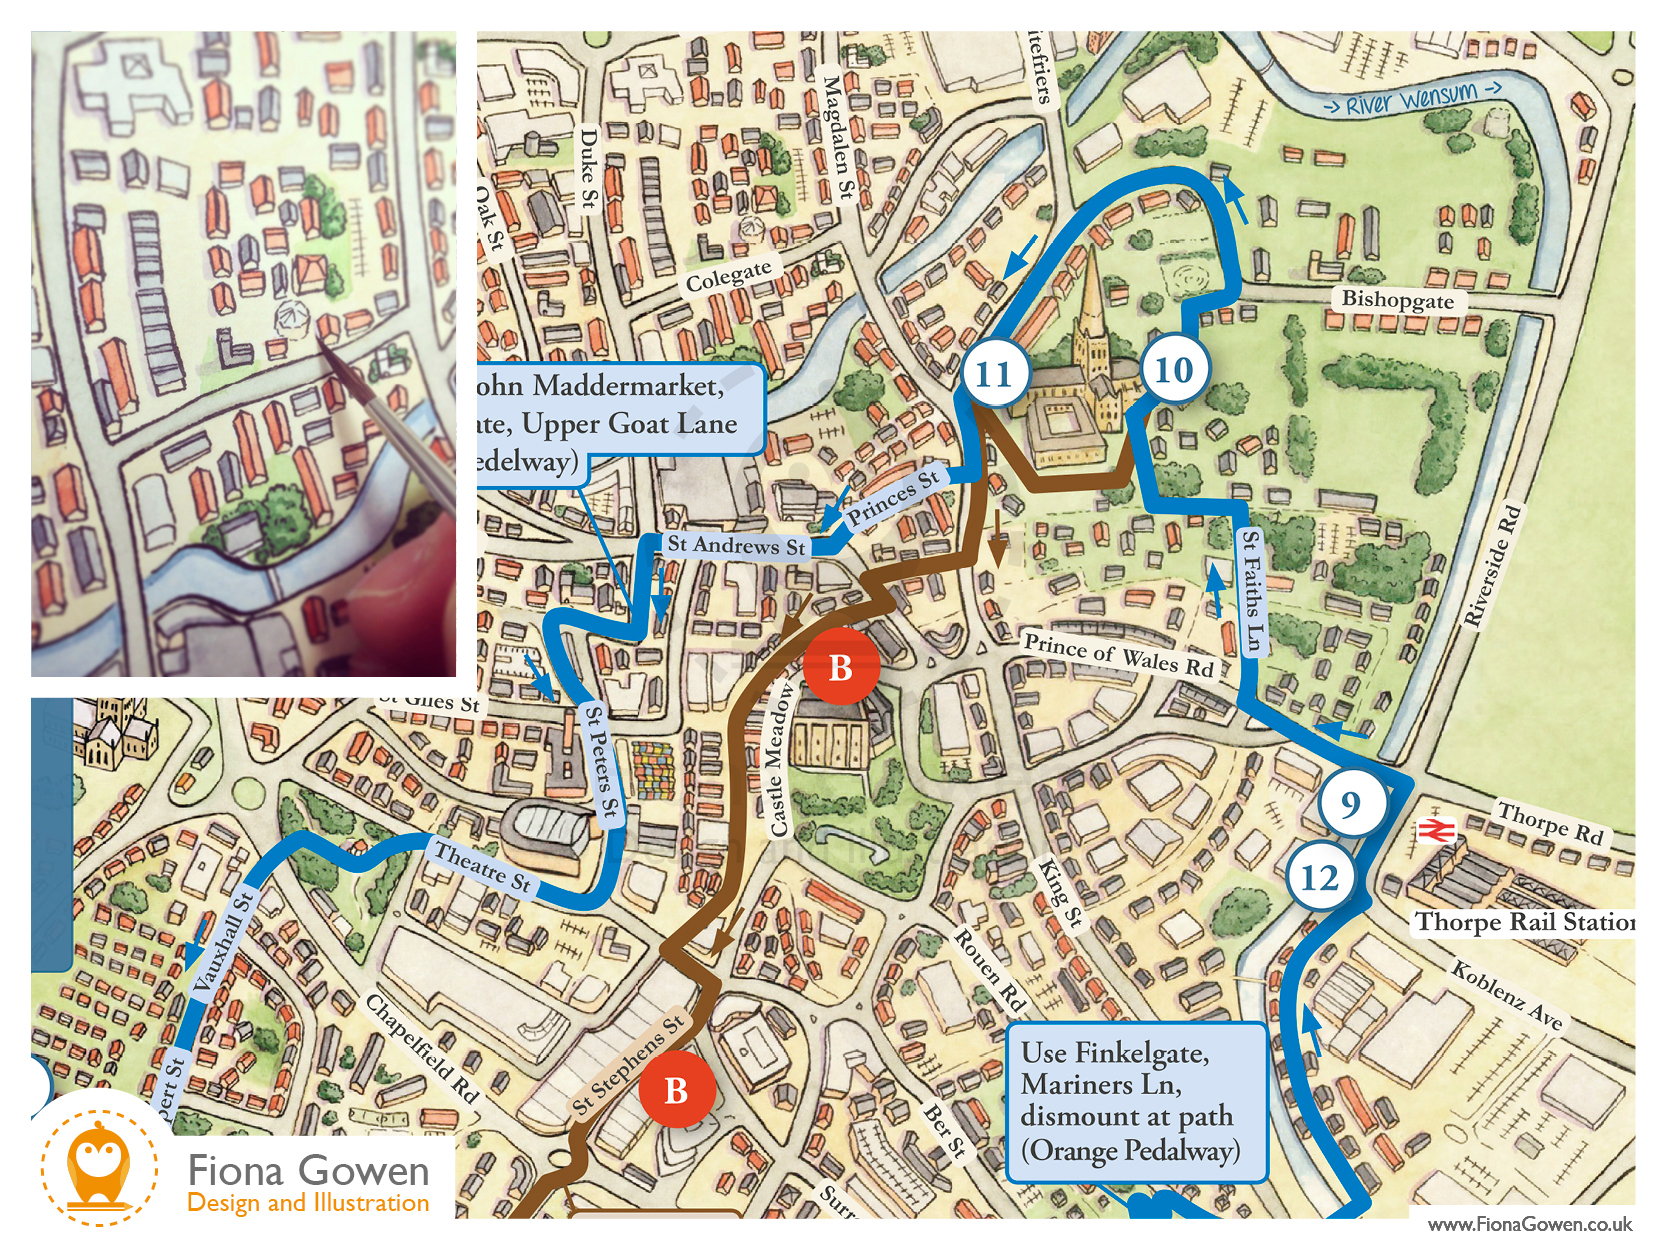 Edith Cavell Norwich cycle map illustration by Norwich map illustrator Fiona Gowen. Inset Fiona painting the illustrated map using Watercolours.